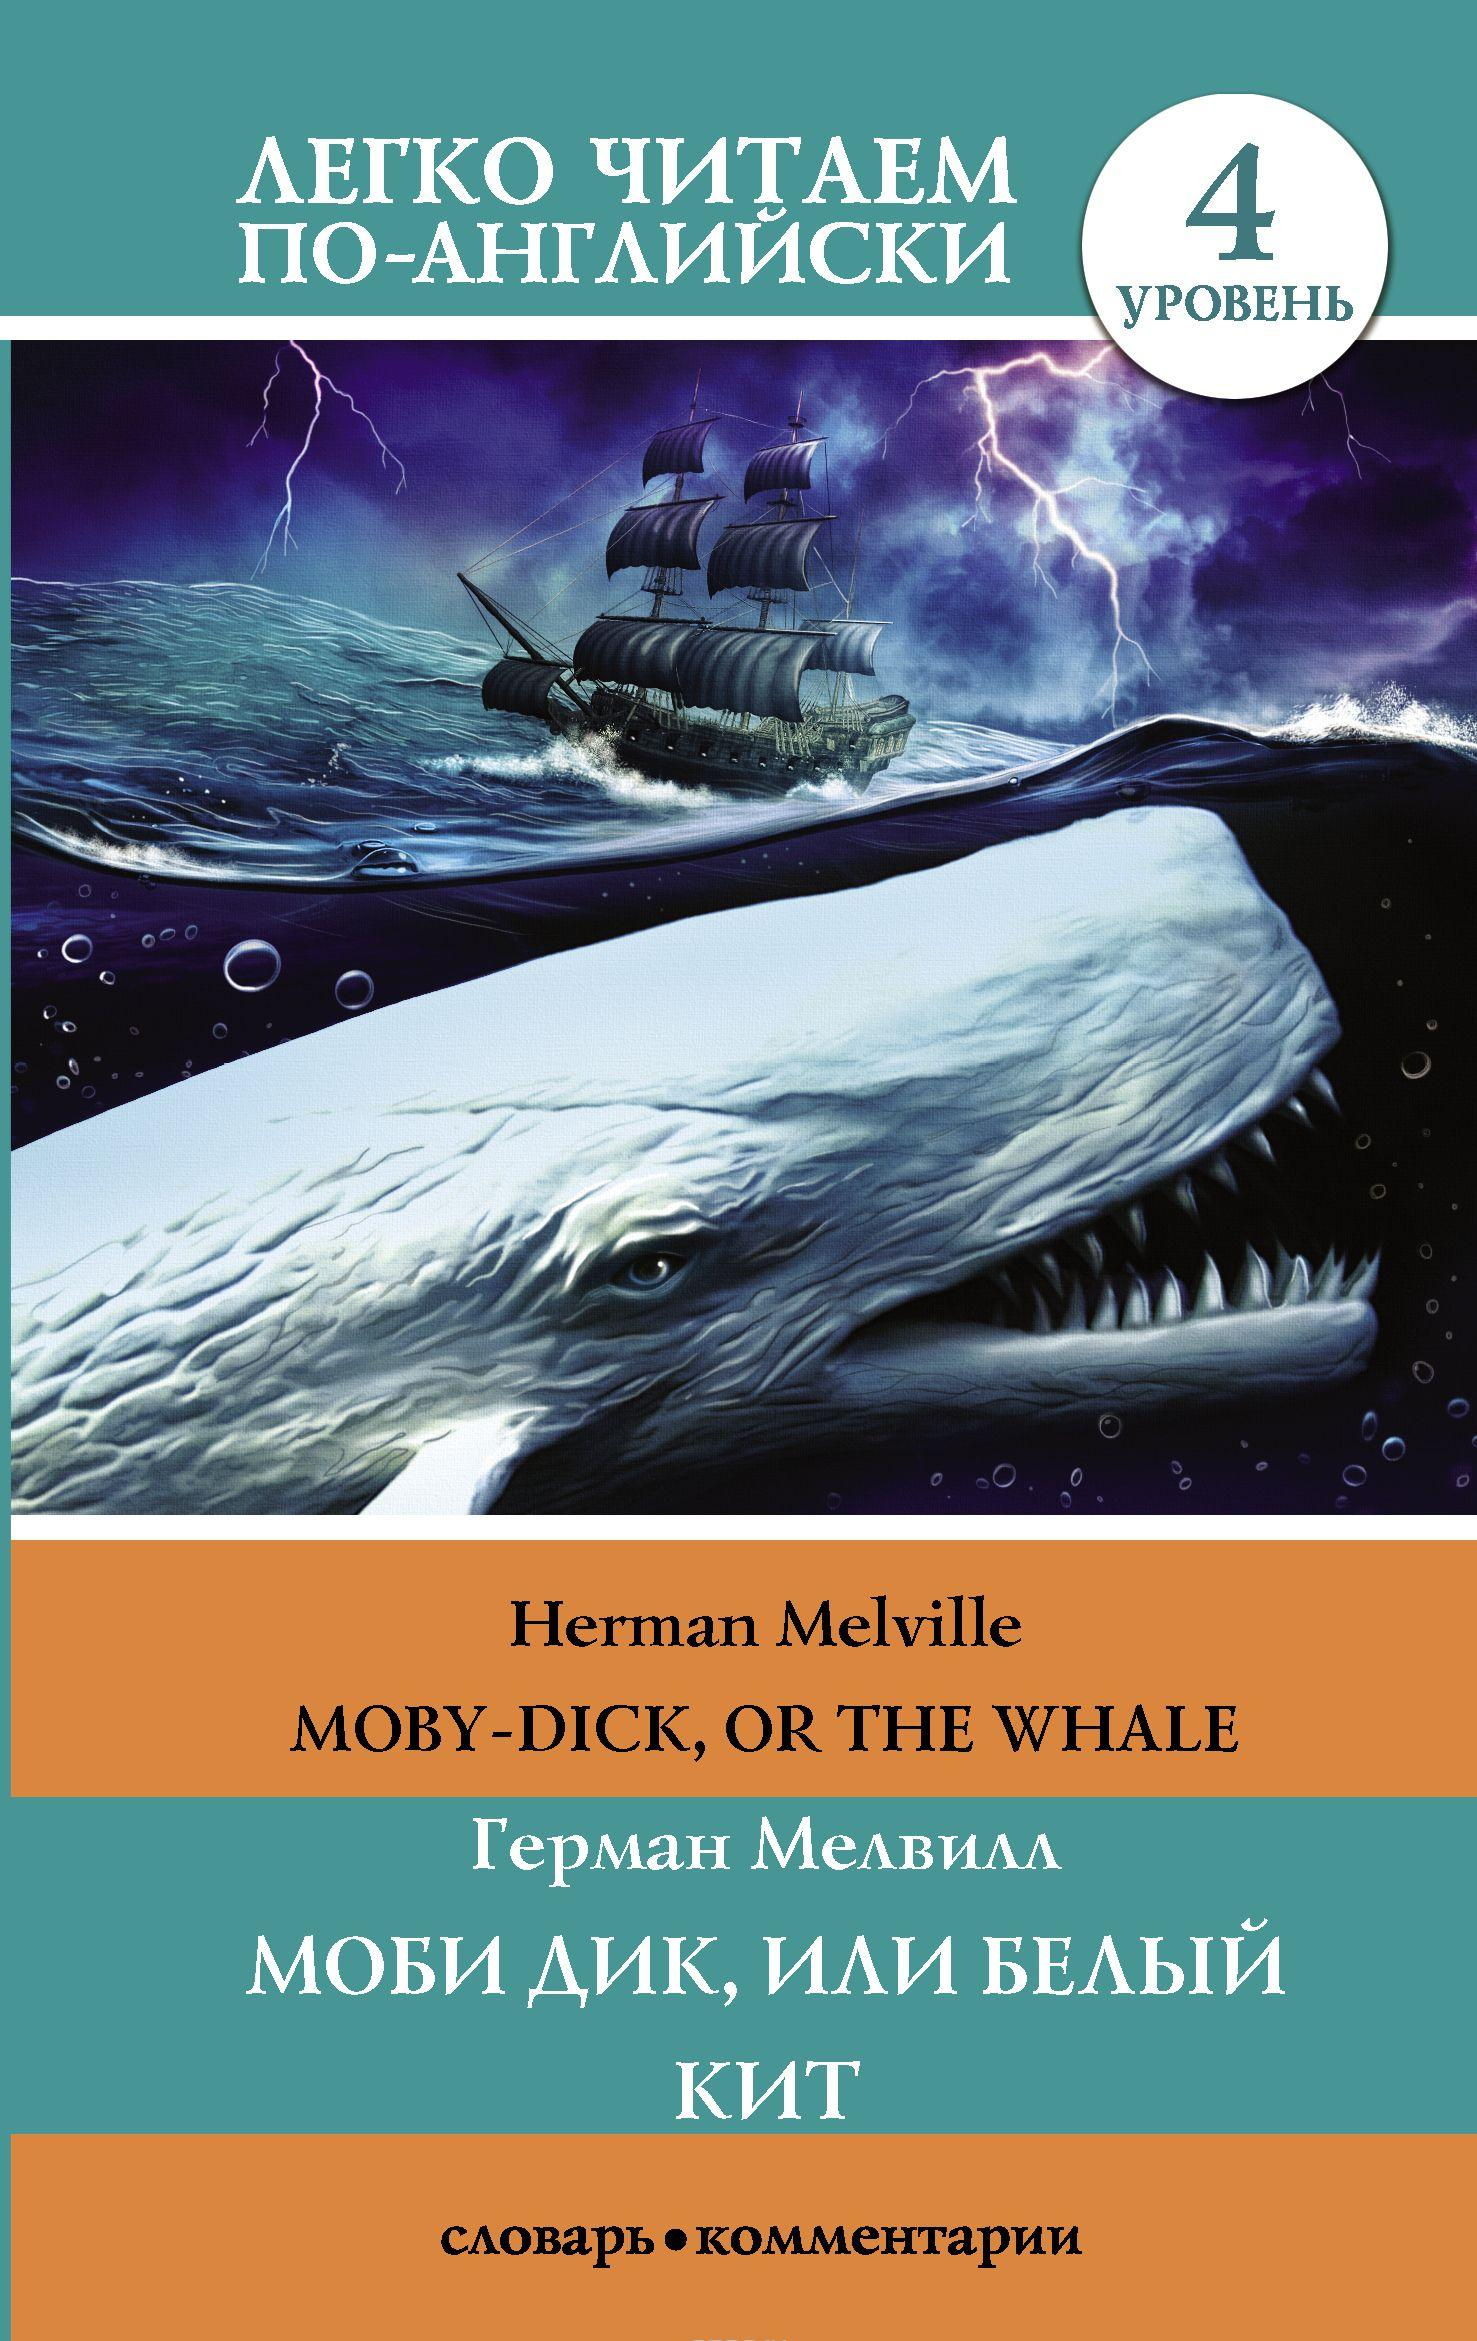 Moby Dick, or The Whale / Моби Дик, или Белый Кит. Уровень 4 — Герман Мелвилл